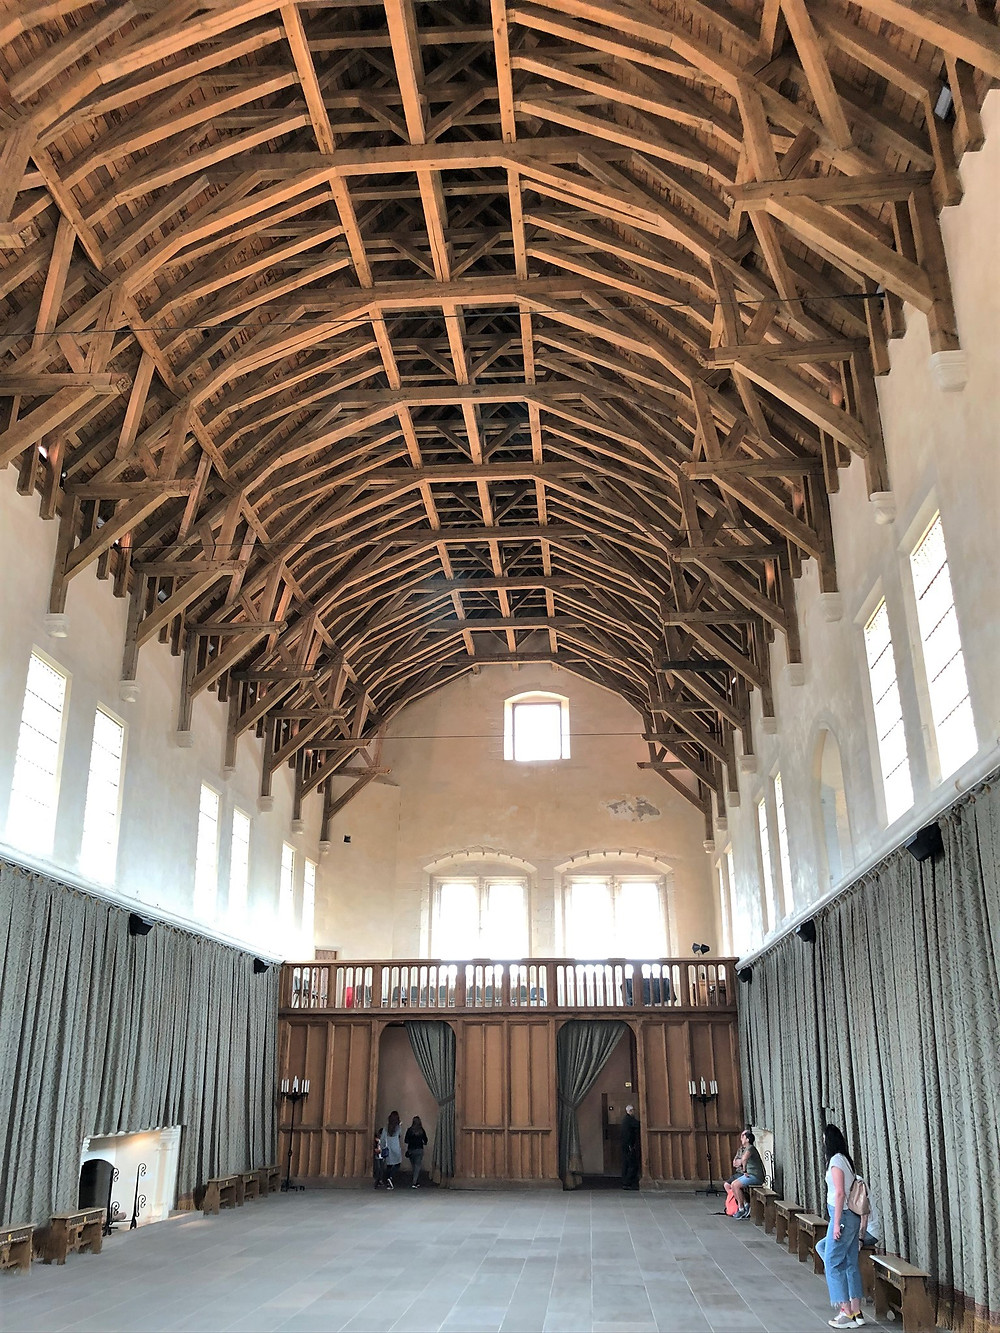 The  hammerbeam roof contains over 1300 beams of the Great Hall in Stirling Castle made from 400 oak trees